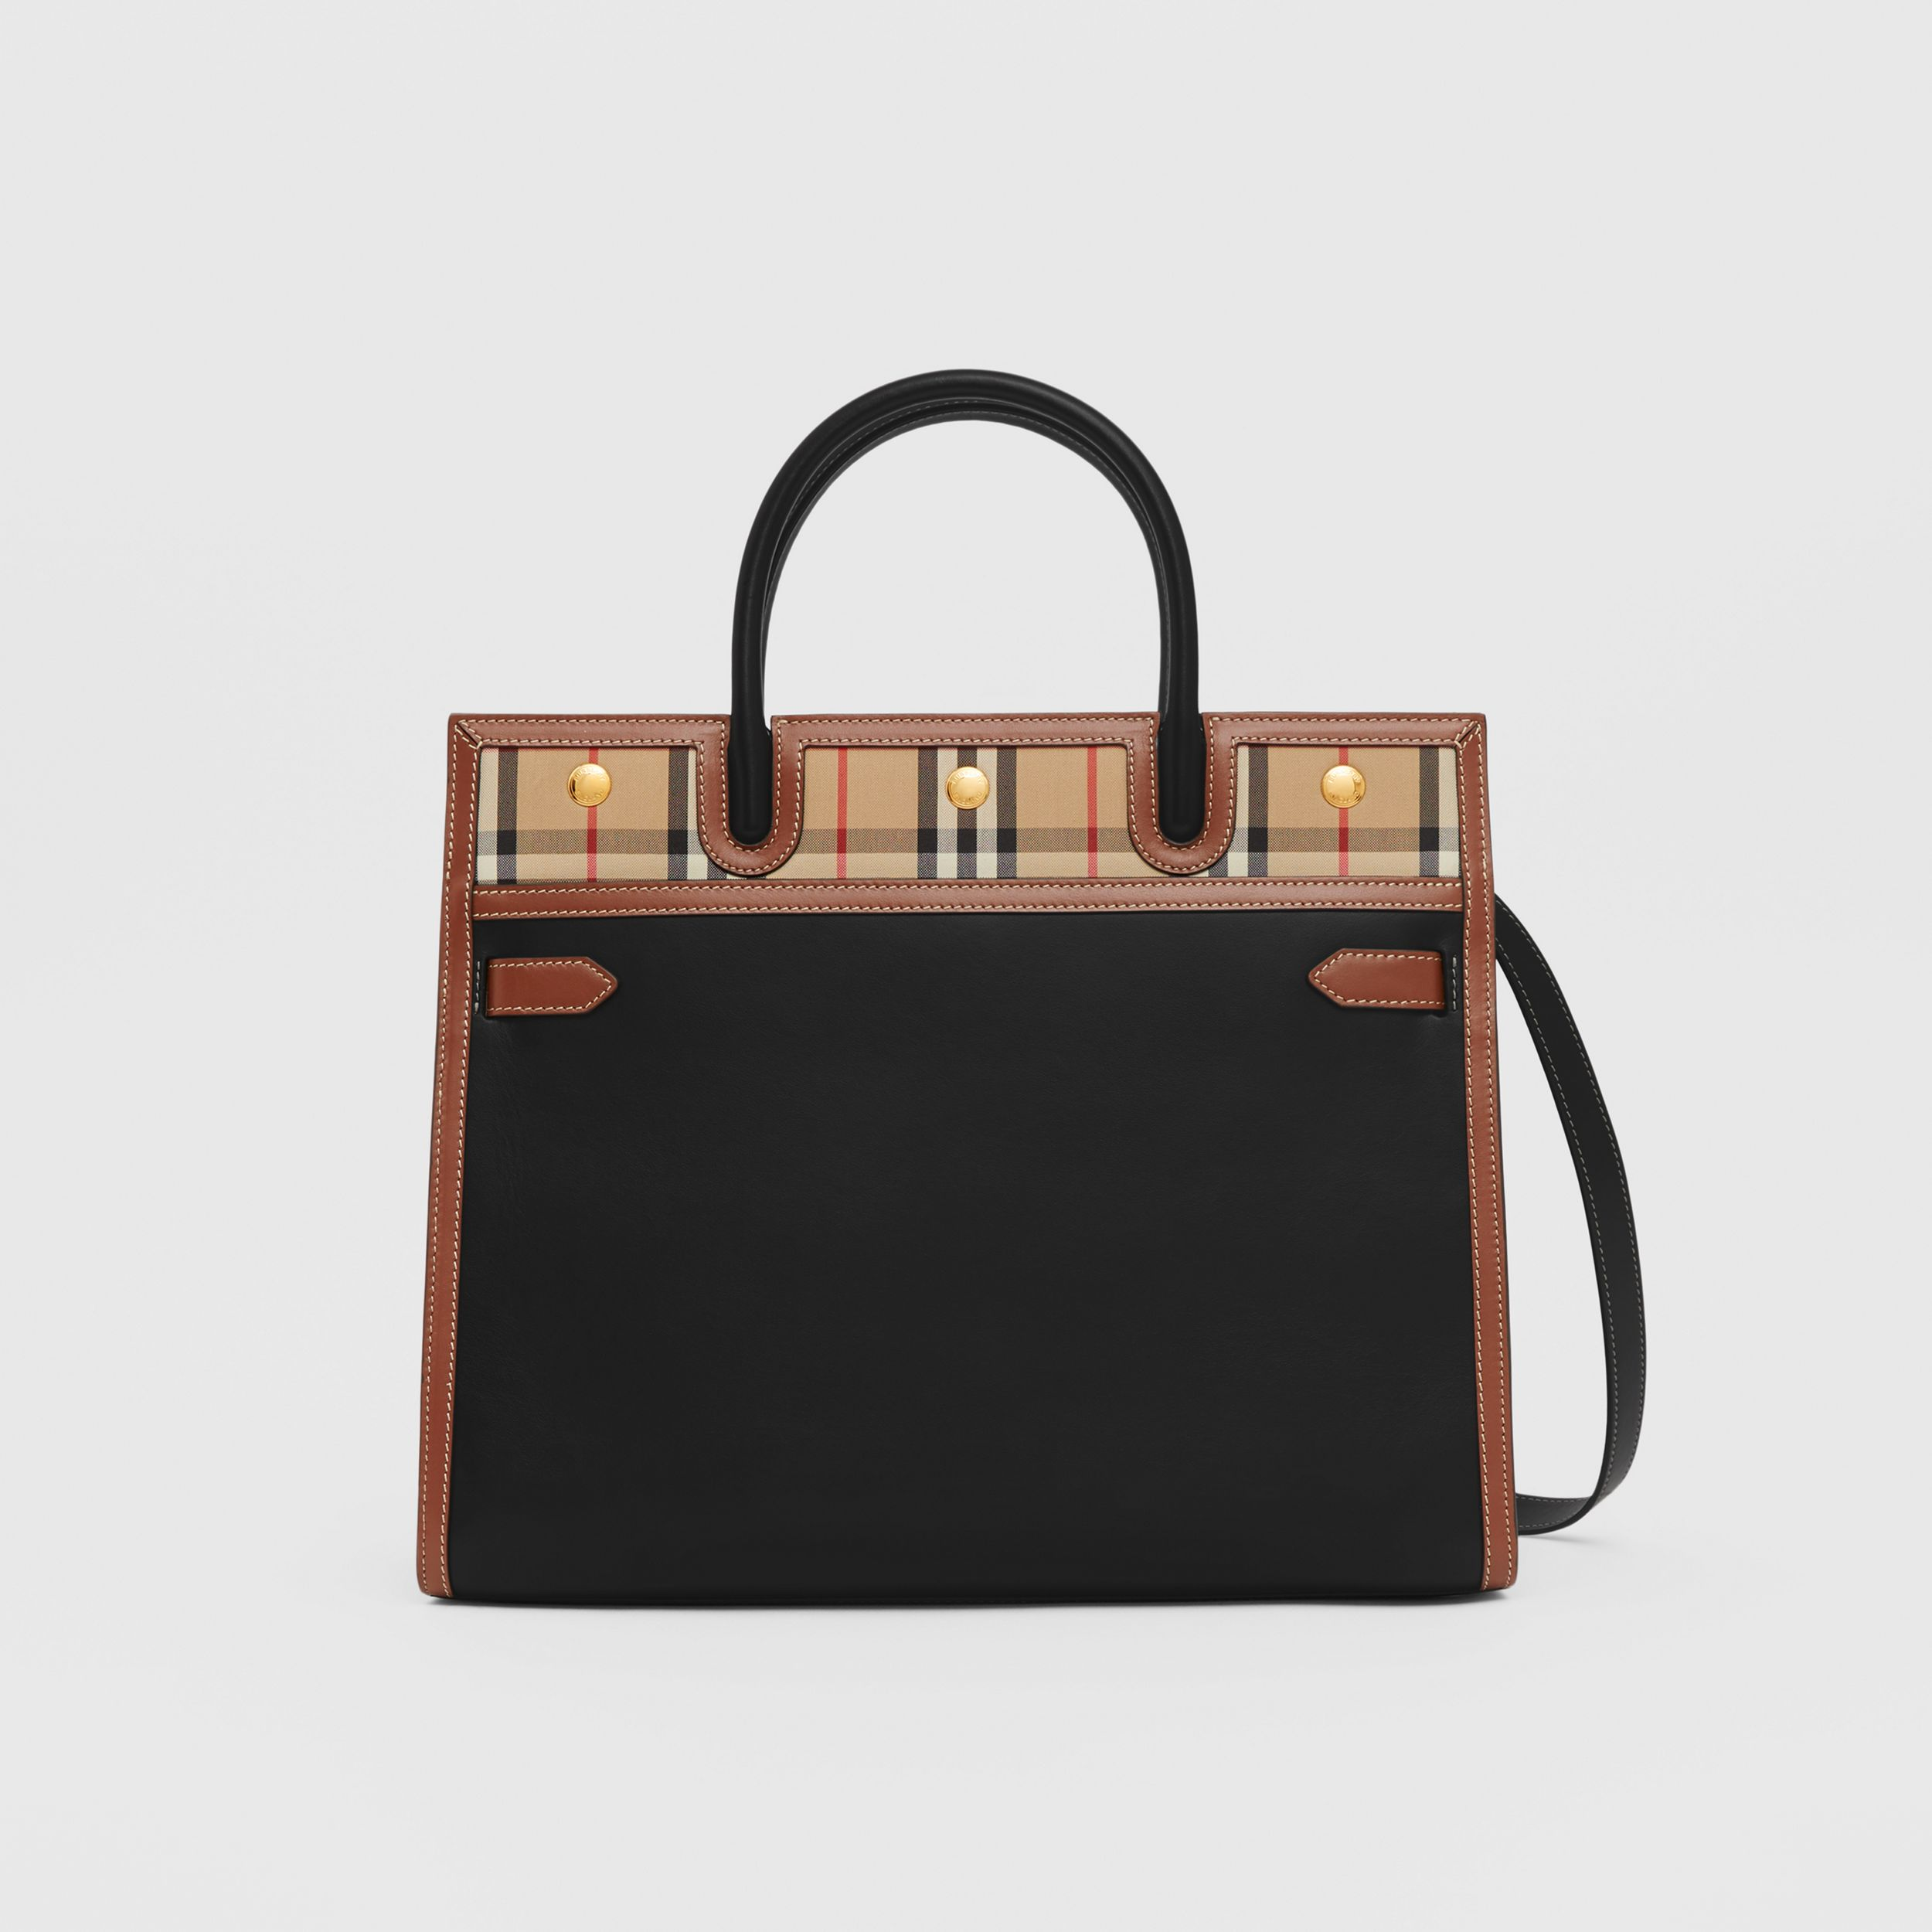 Borsa Title media in pelle e tessuto con motivo Vintage check (Nero) - Donna | Burberry - 1